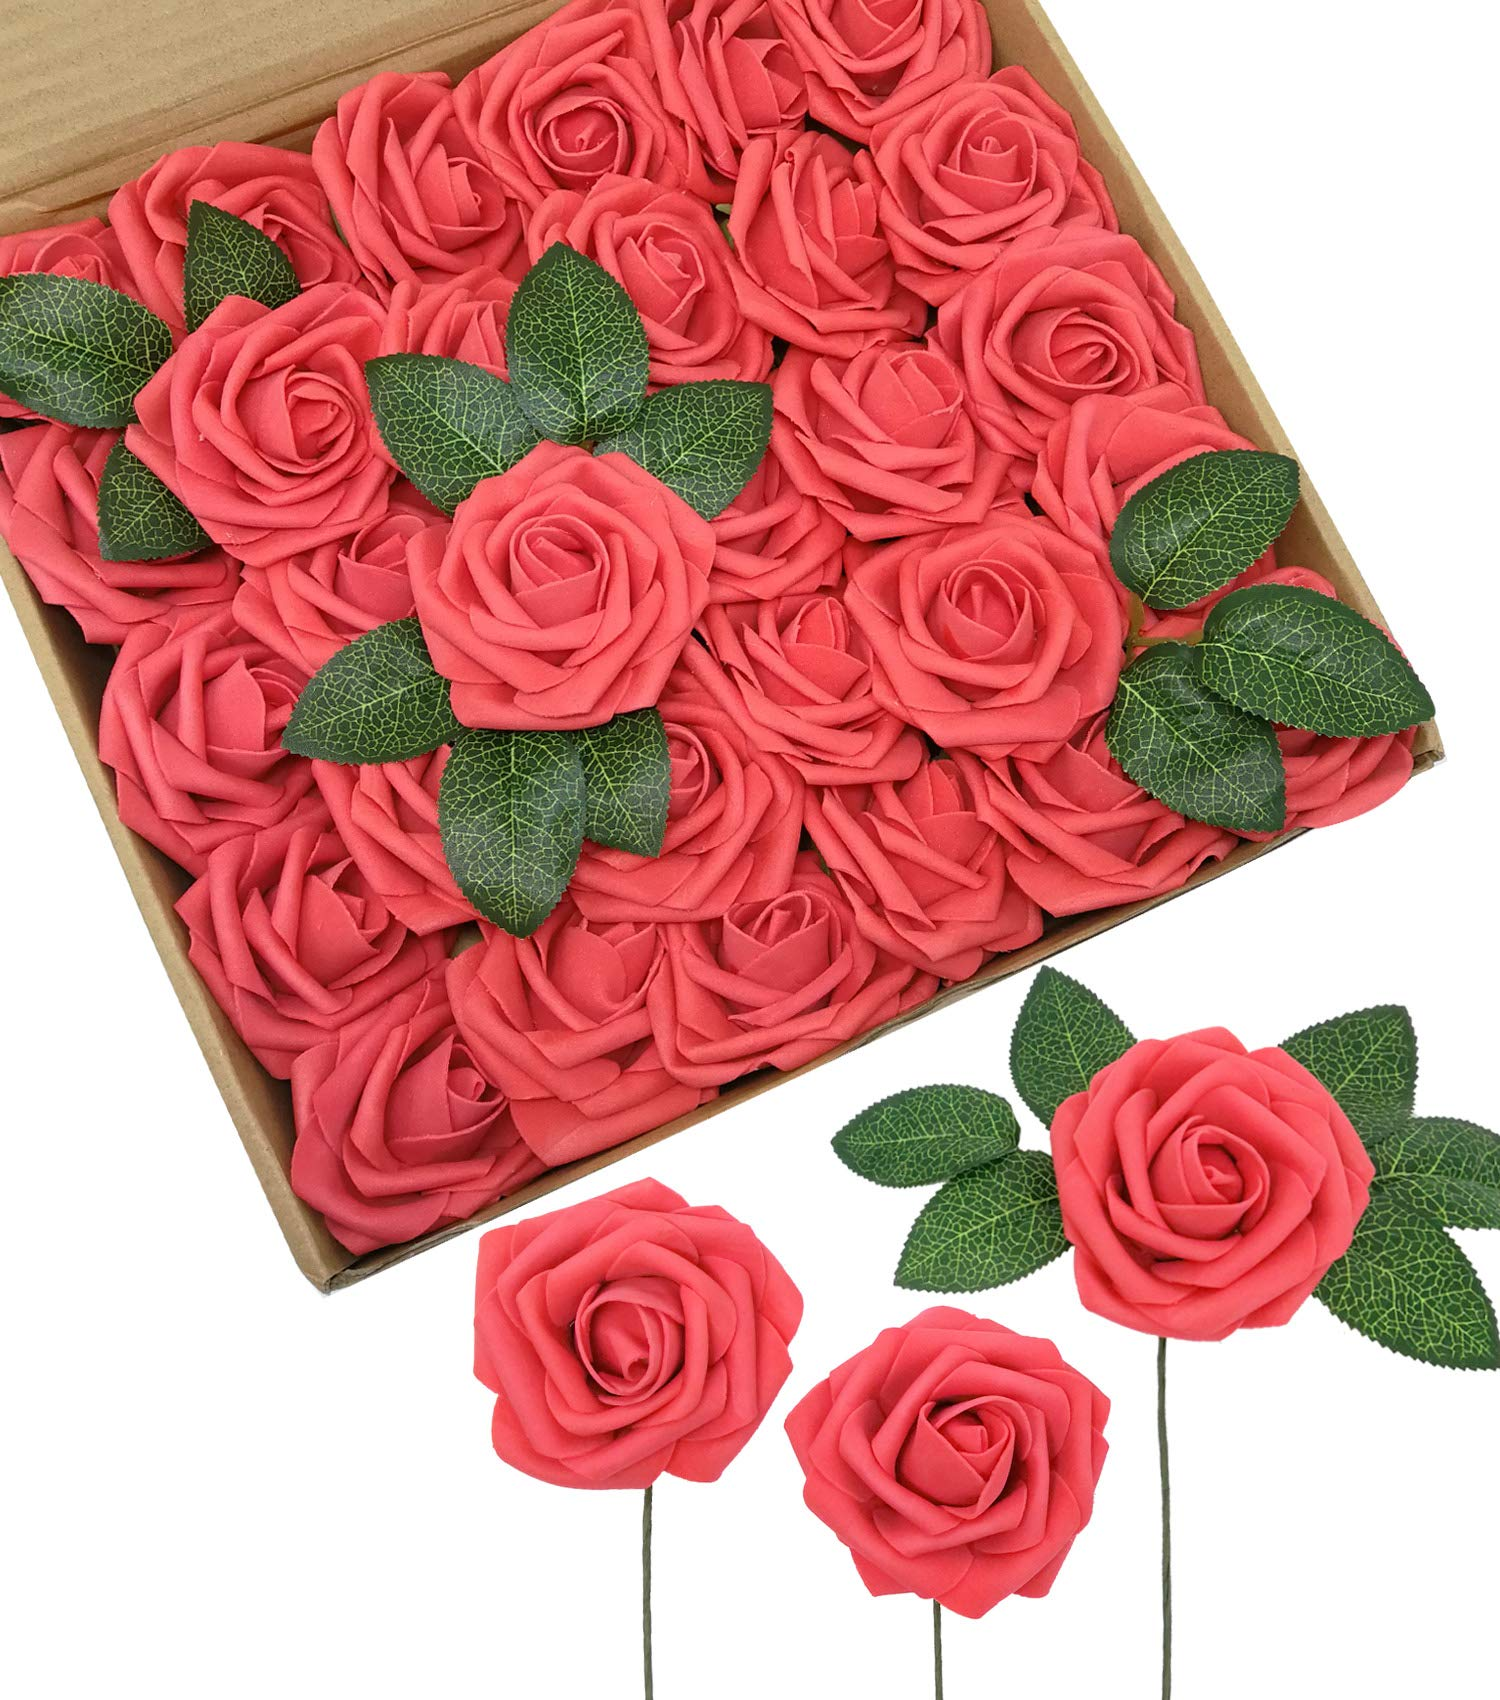 D-Seven-Artificial-Flowers-30PCS-Real-Looking-Fake-Roses-with-Stem-for-DIY-Wedding-Bouquets-Centerpieces-Party-Baby-Shower-Home-Decorations-Coral